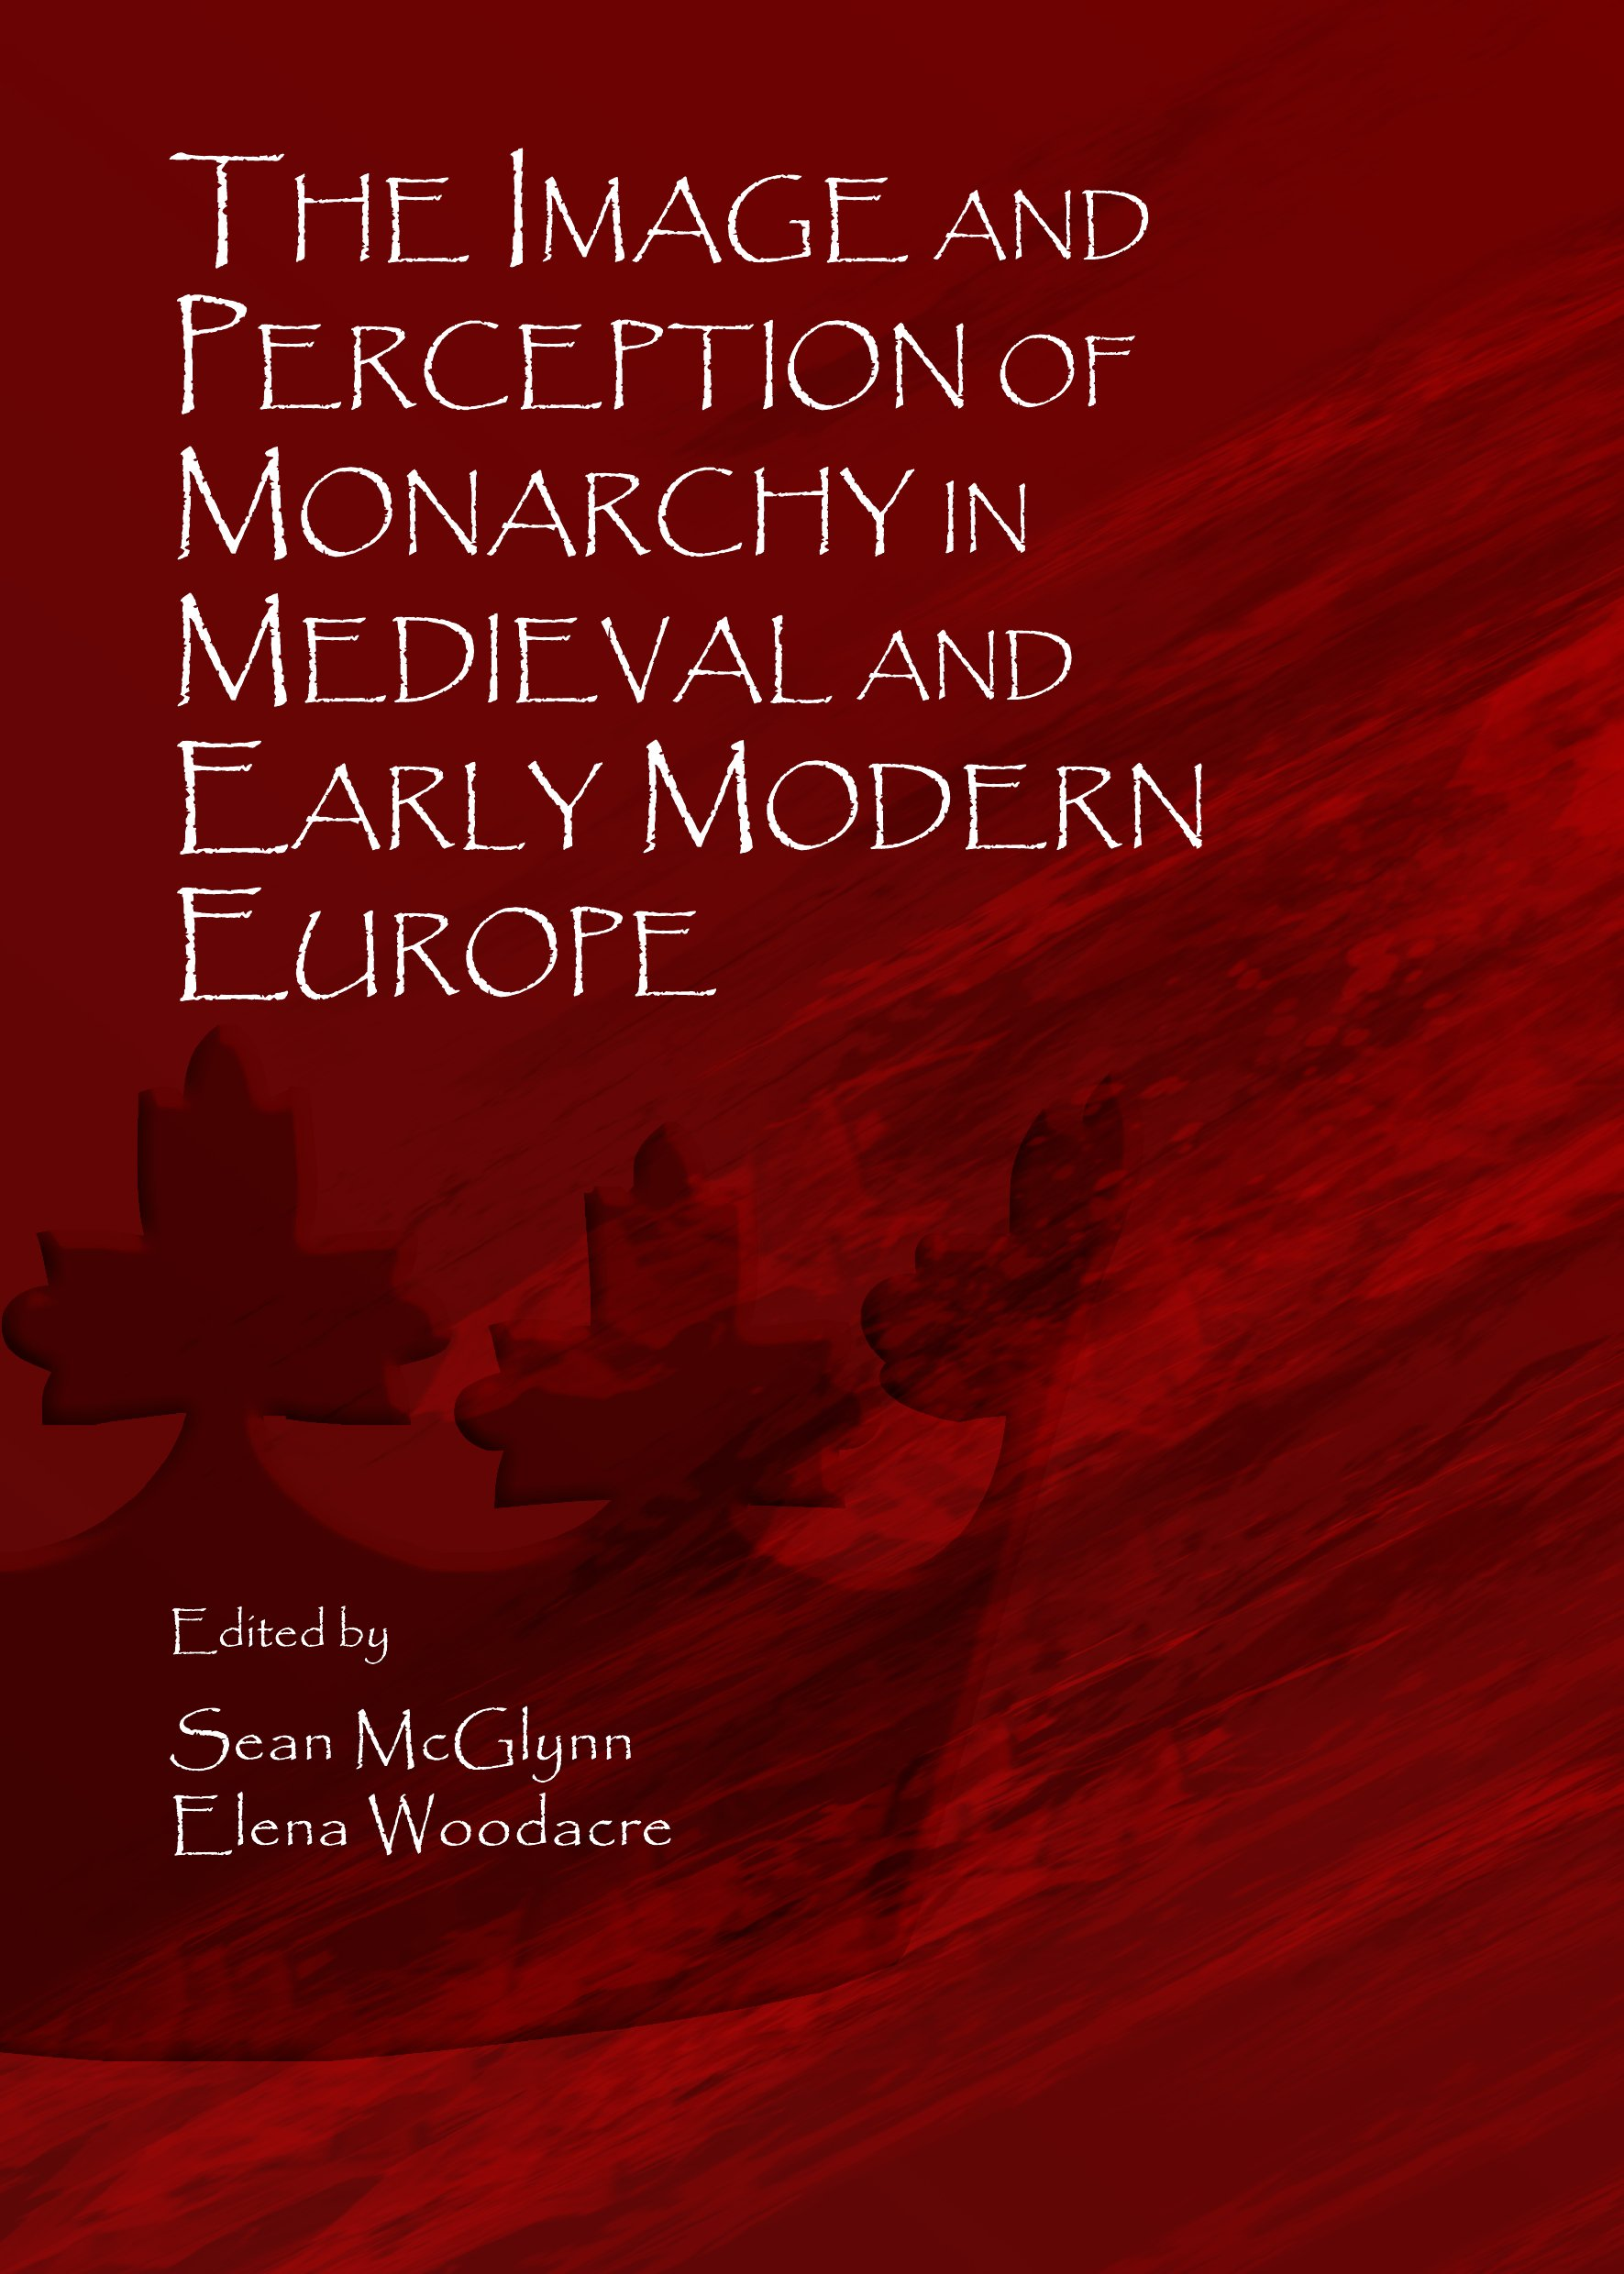 The Image and Perception of Monarchy in Medieval and Early Modern Europe